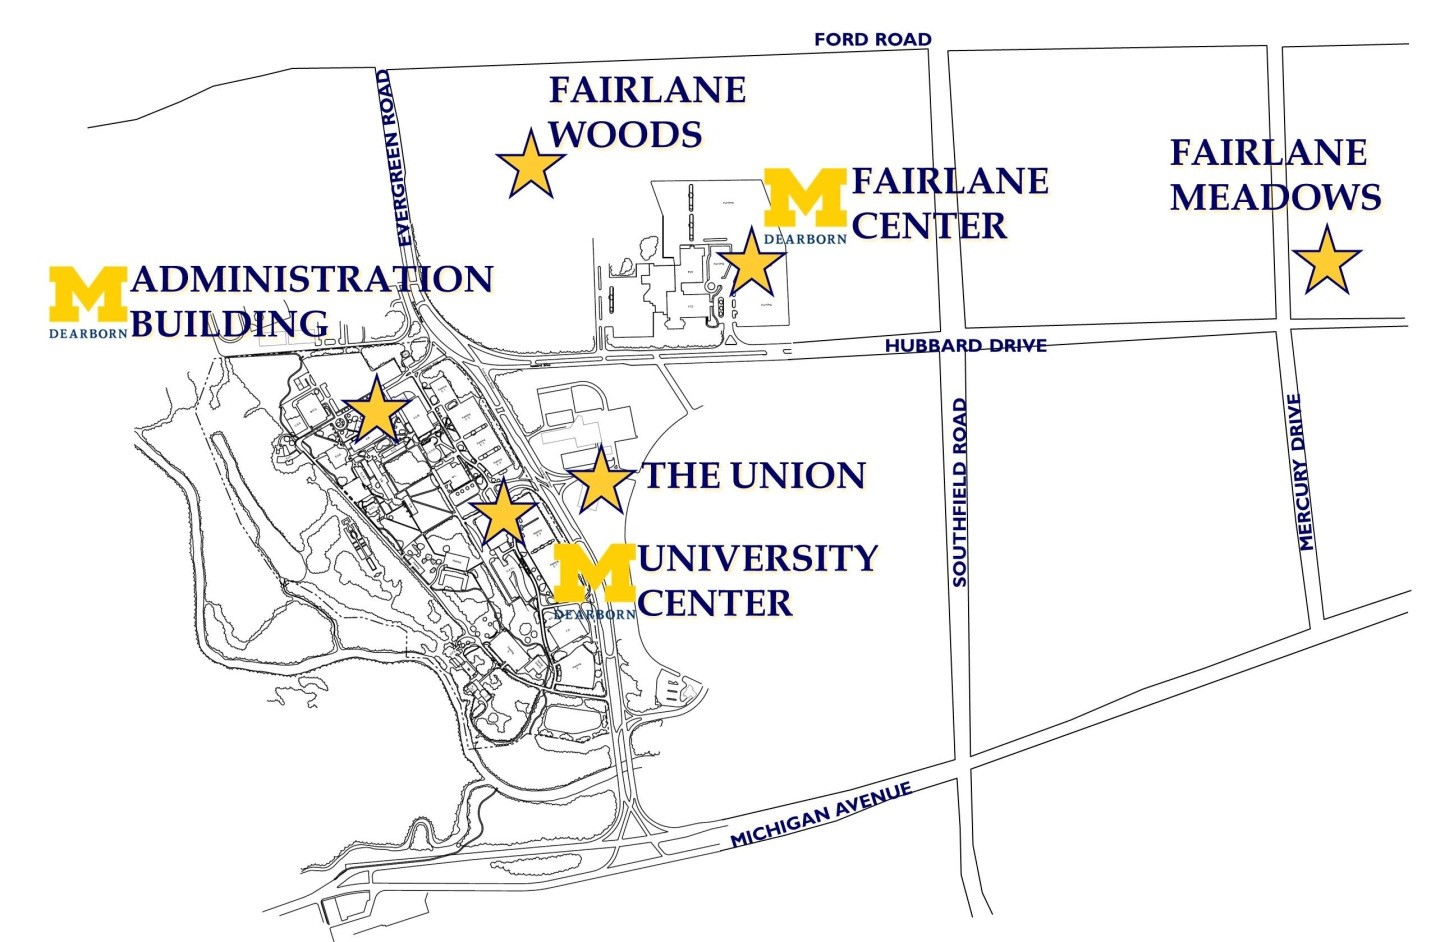 Shuttle Service on dearborn florida map, ford dearborn campus map, u of m directions, u of m students, dearborn street chicago map, dearborn mi map, u of texas austin campus map, u of m football, u of m campus, u of m ann arbor map, michigan dearborn map, u of m jokes, u of m hospital map, u of m michigan map, u of michigan hospital map, u of m minneapolis map, u of m symbol,